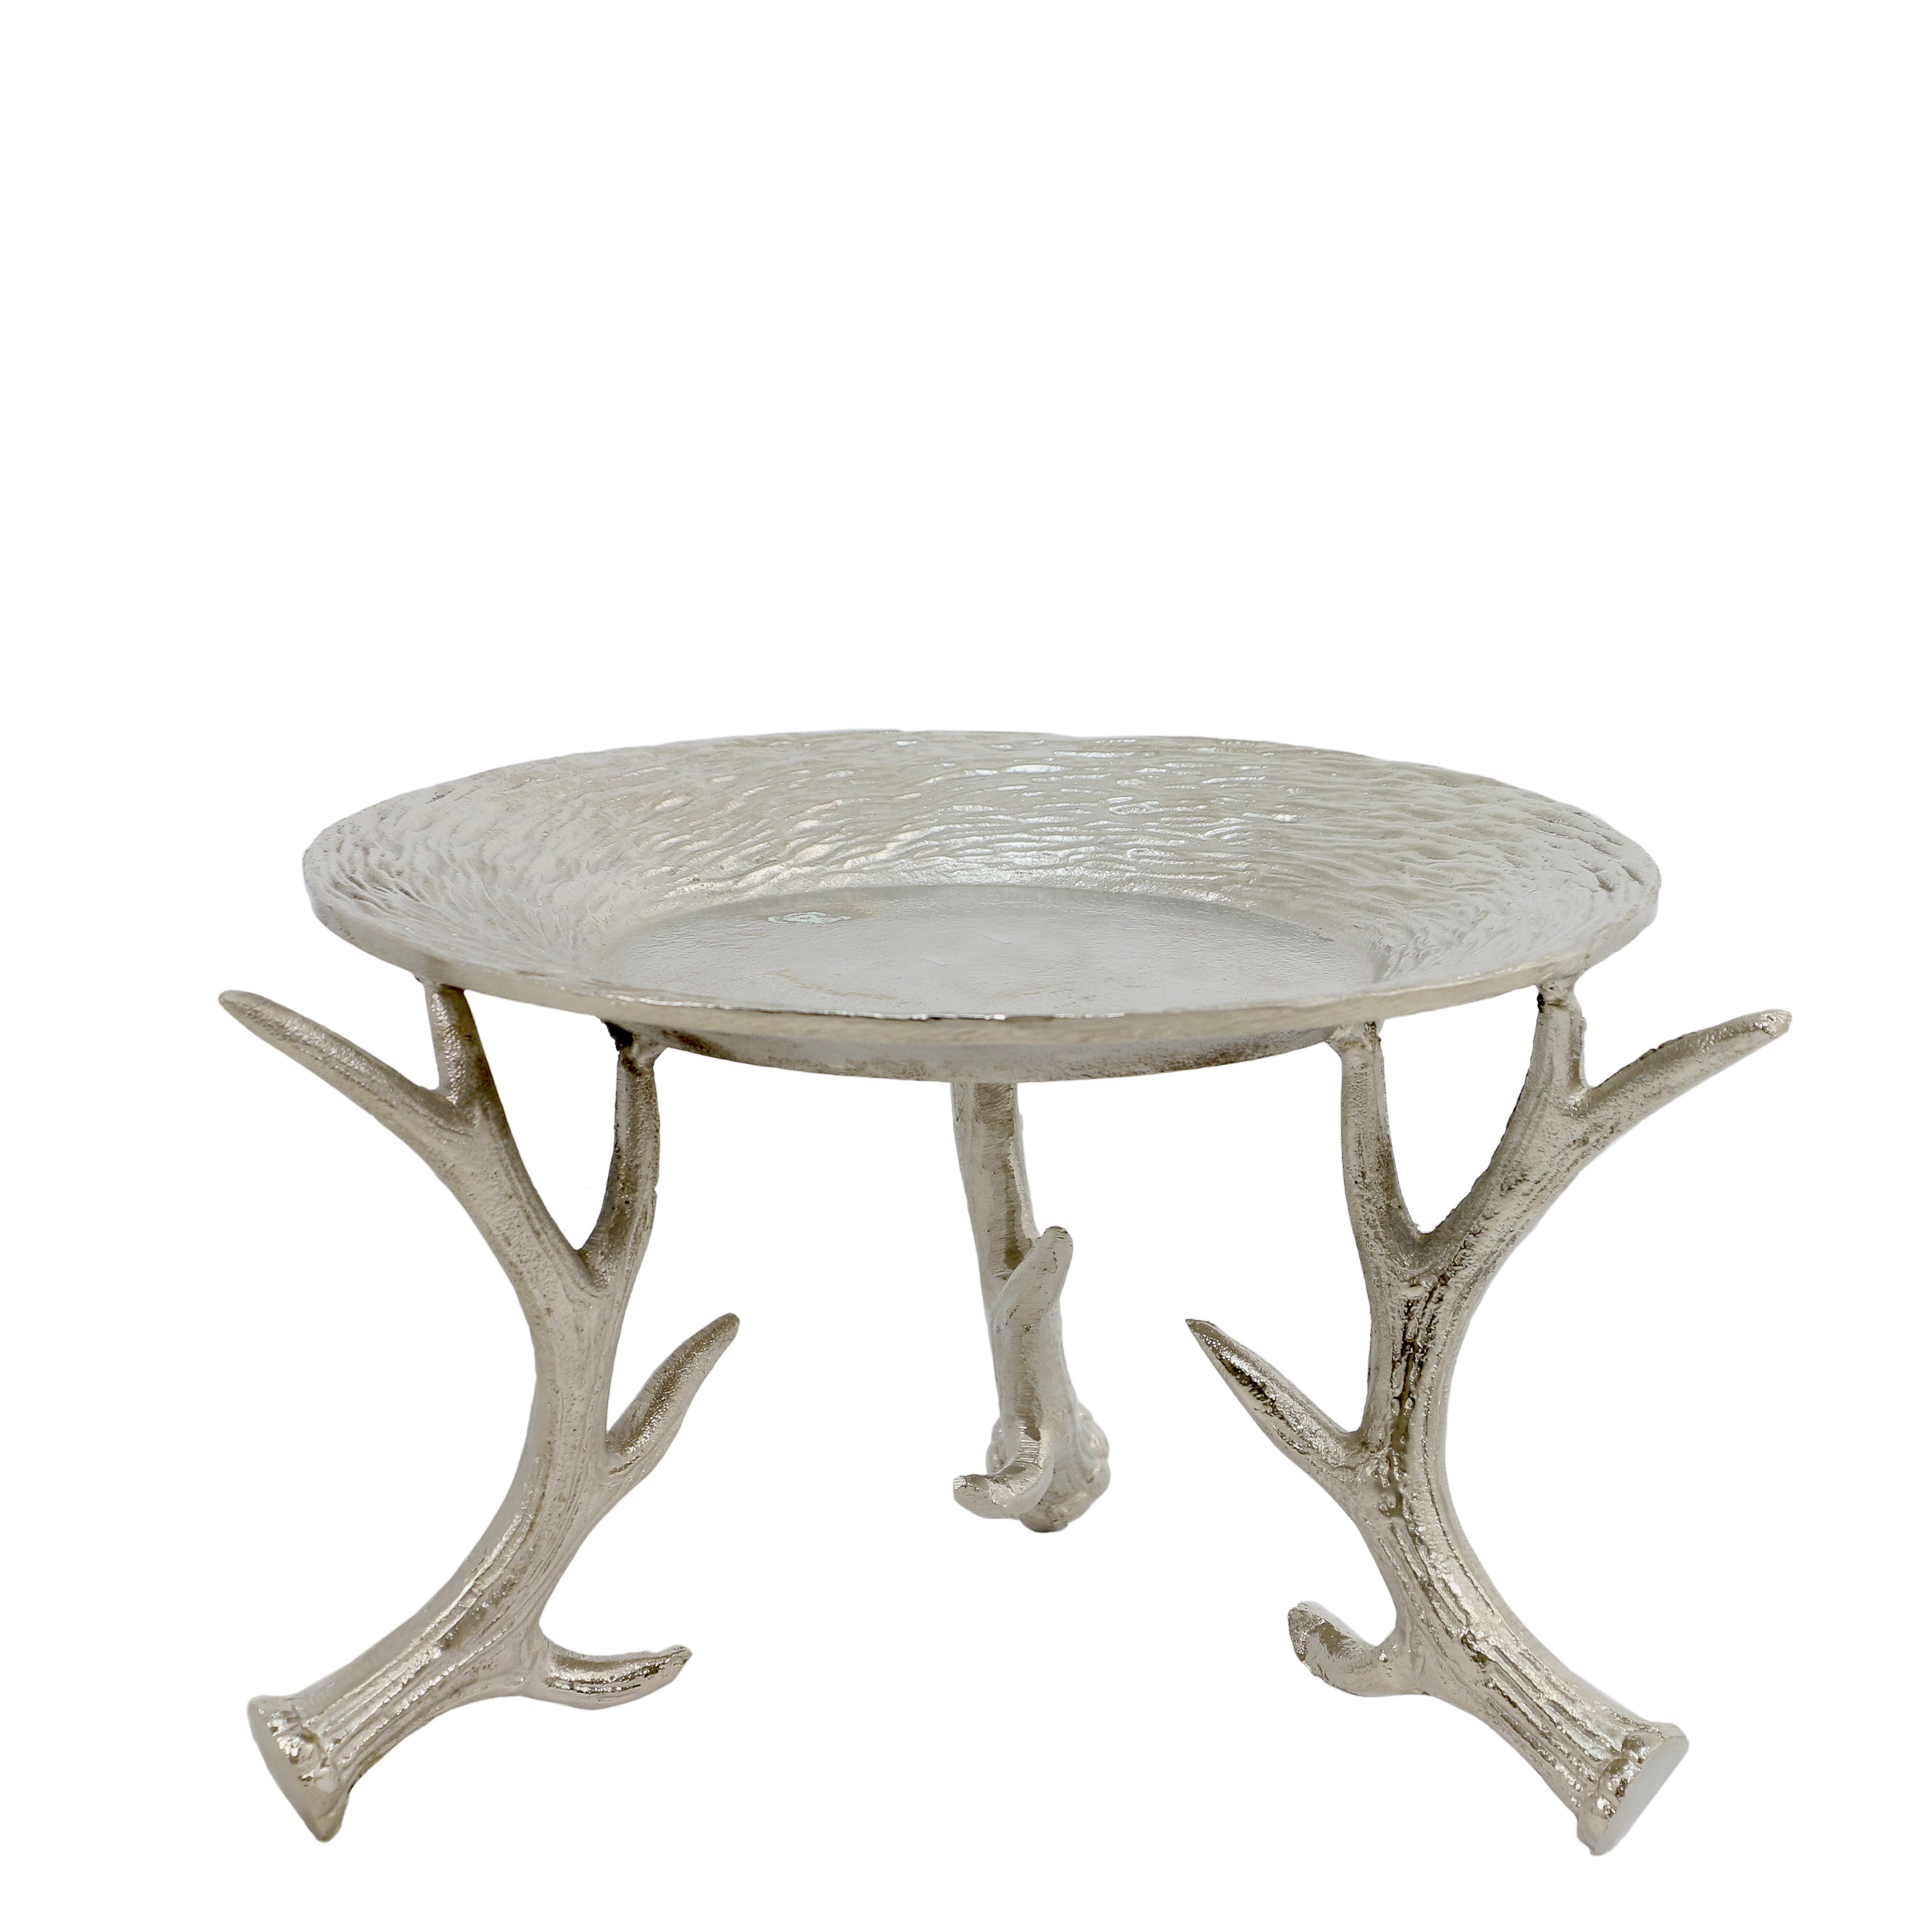 Bryan-Miraflor-Product-Photography-Accent-Furniture-82.jpg